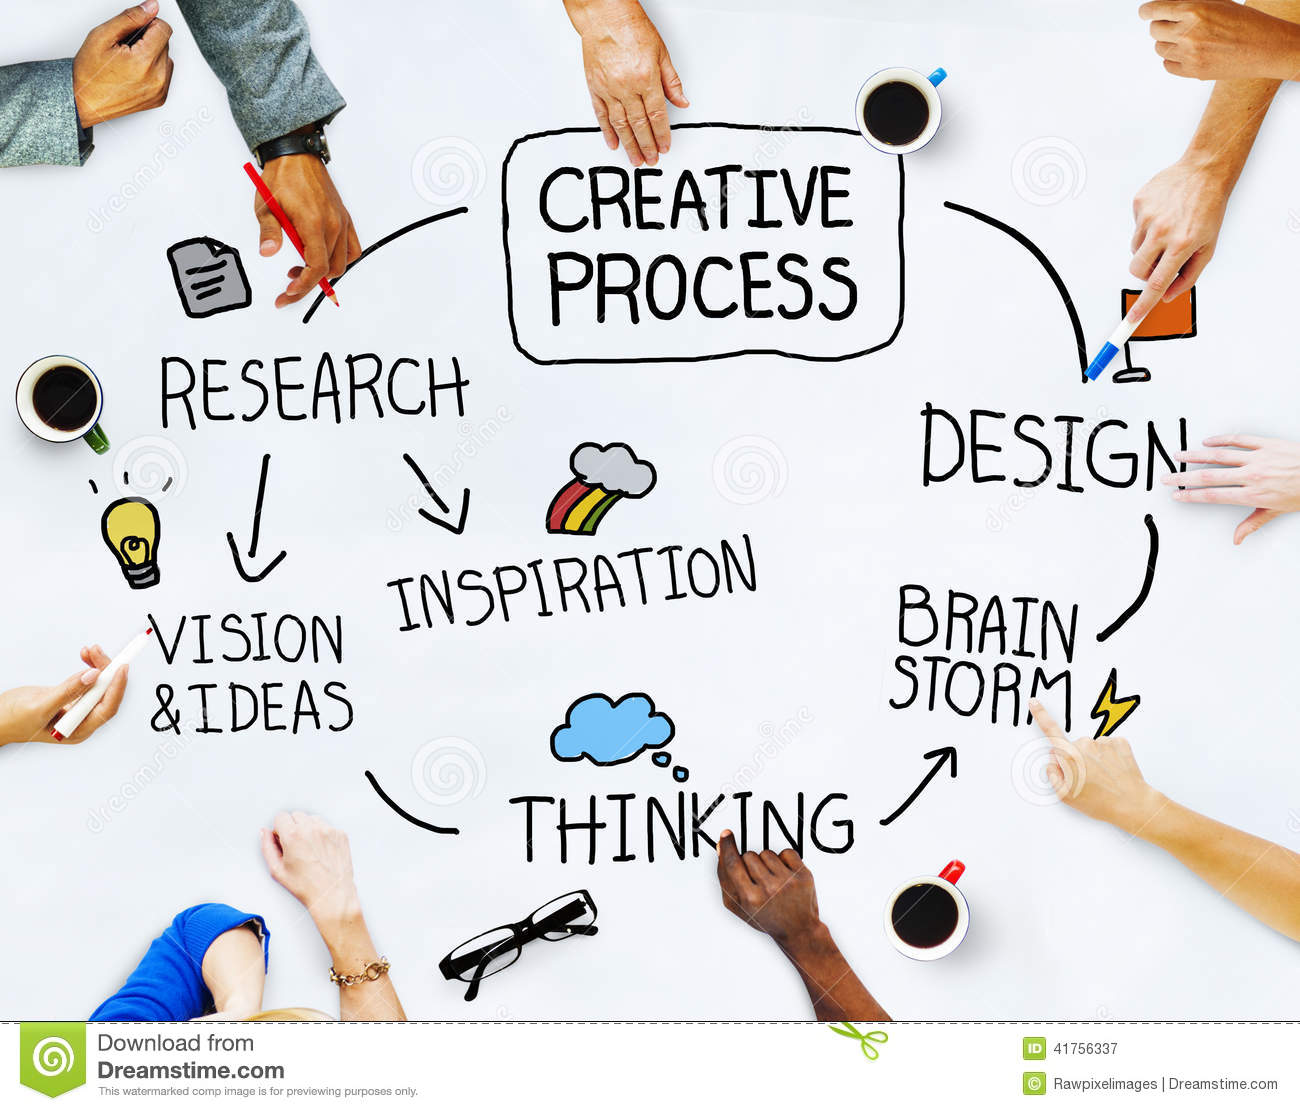 How to Develop a Creative Concept